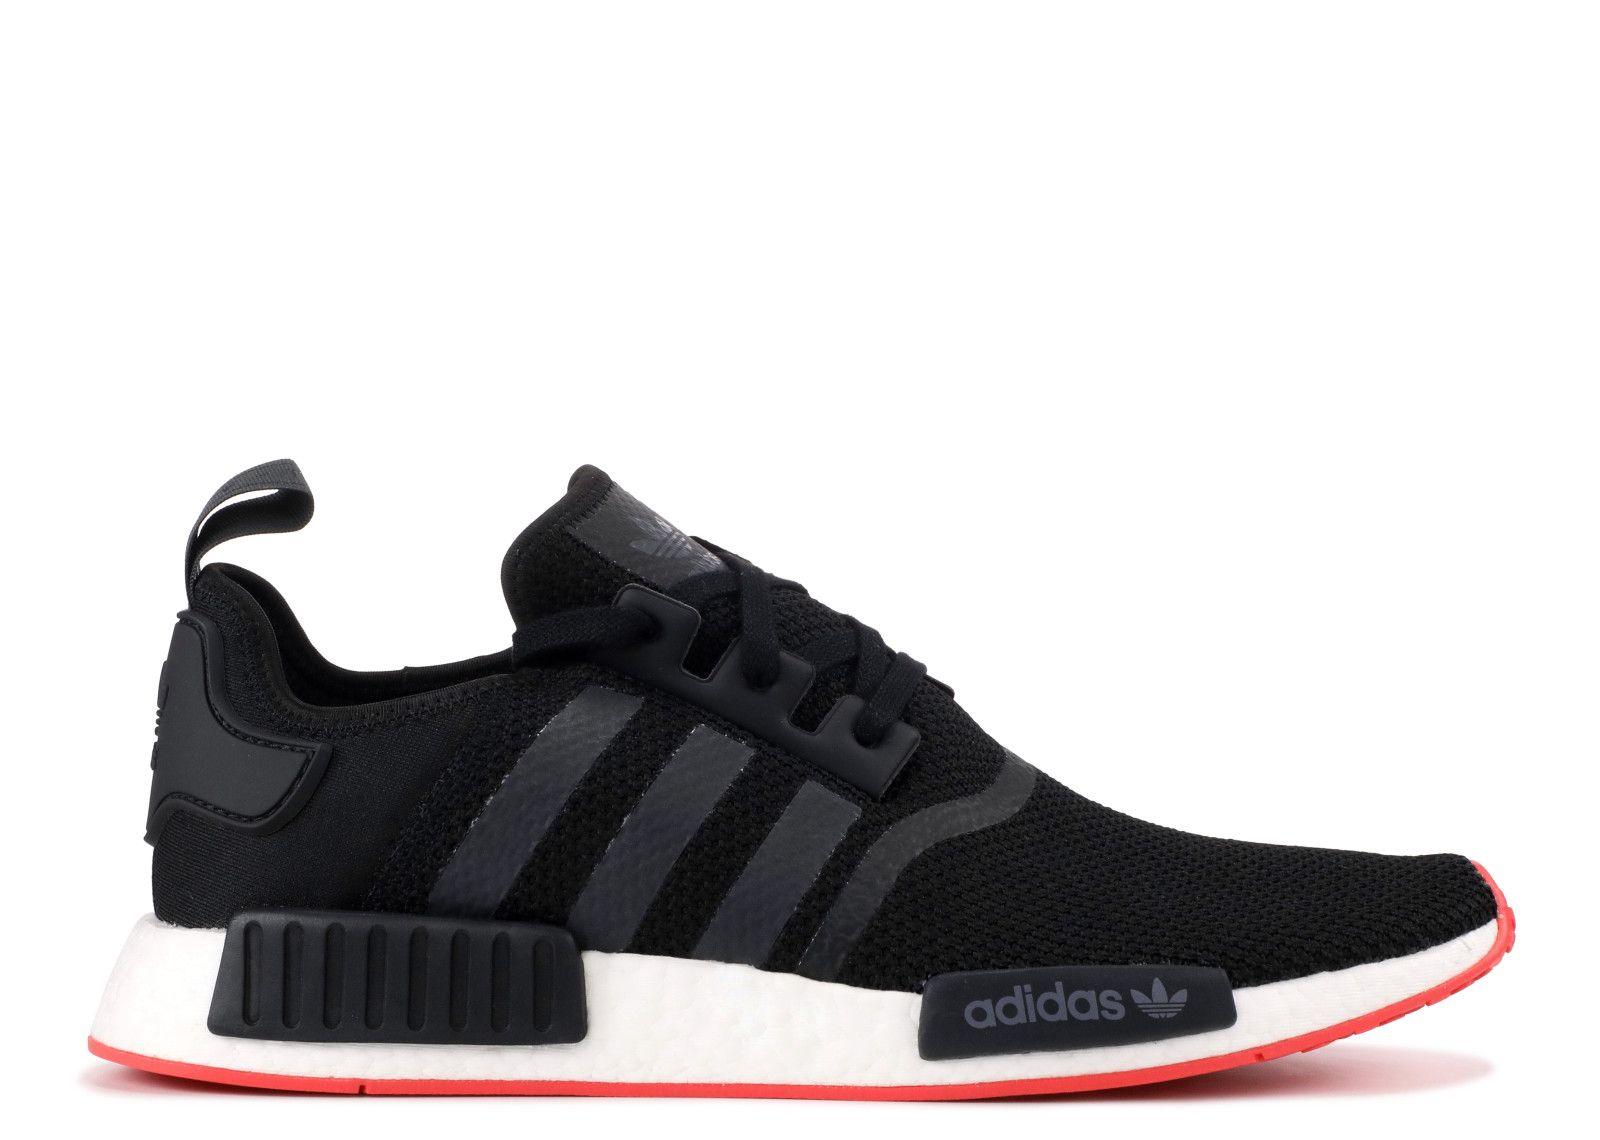 7291a3294d475 Purchase NMD R1 black white infrared CQ2413 2018 Online